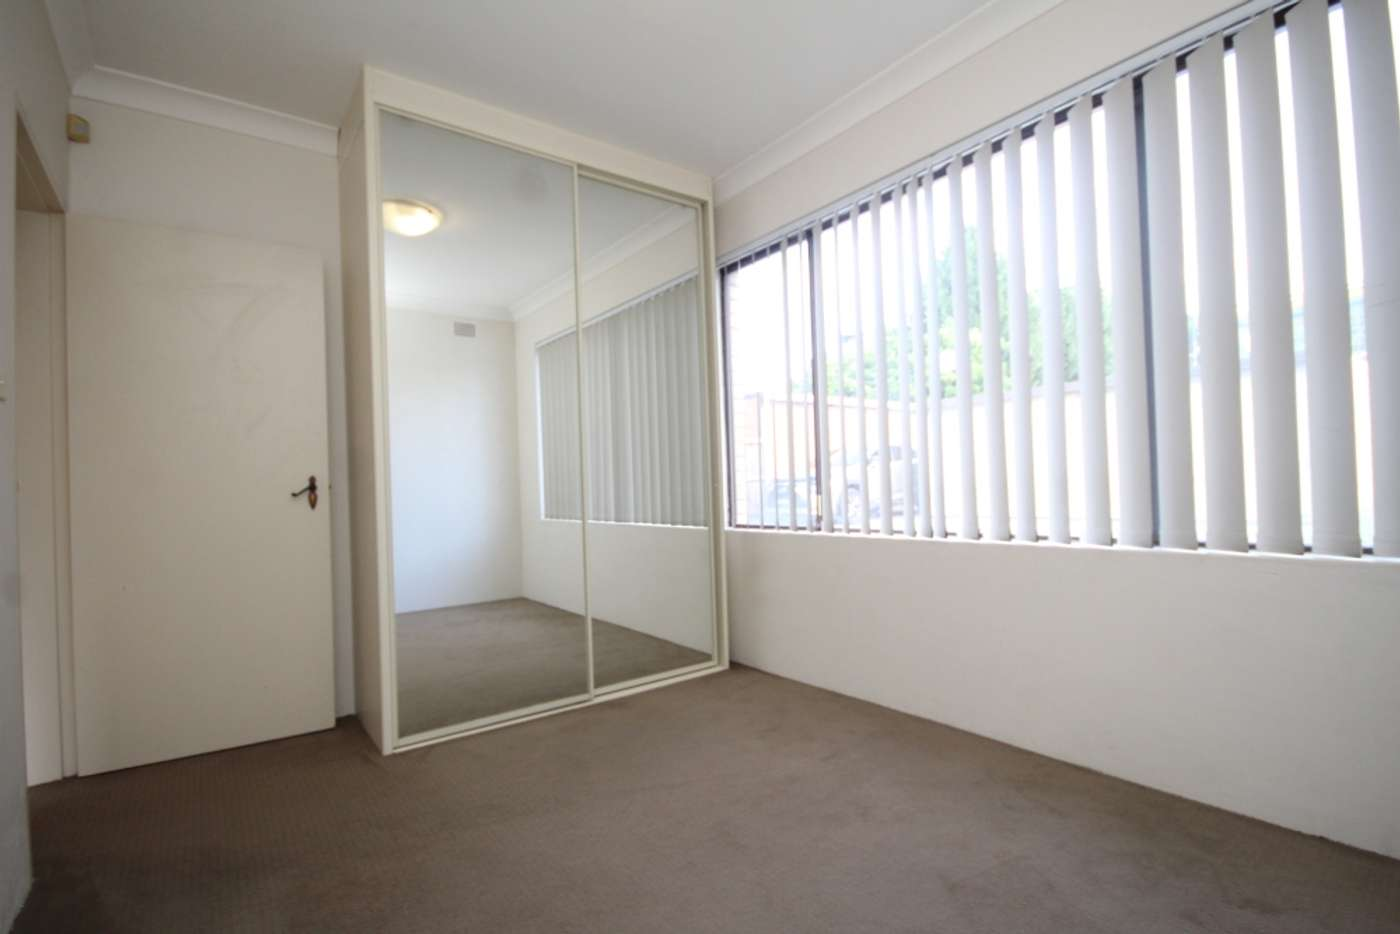 Sixth view of Homely unit listing, 2/113 Wellbank Street, North Strathfield NSW 2137